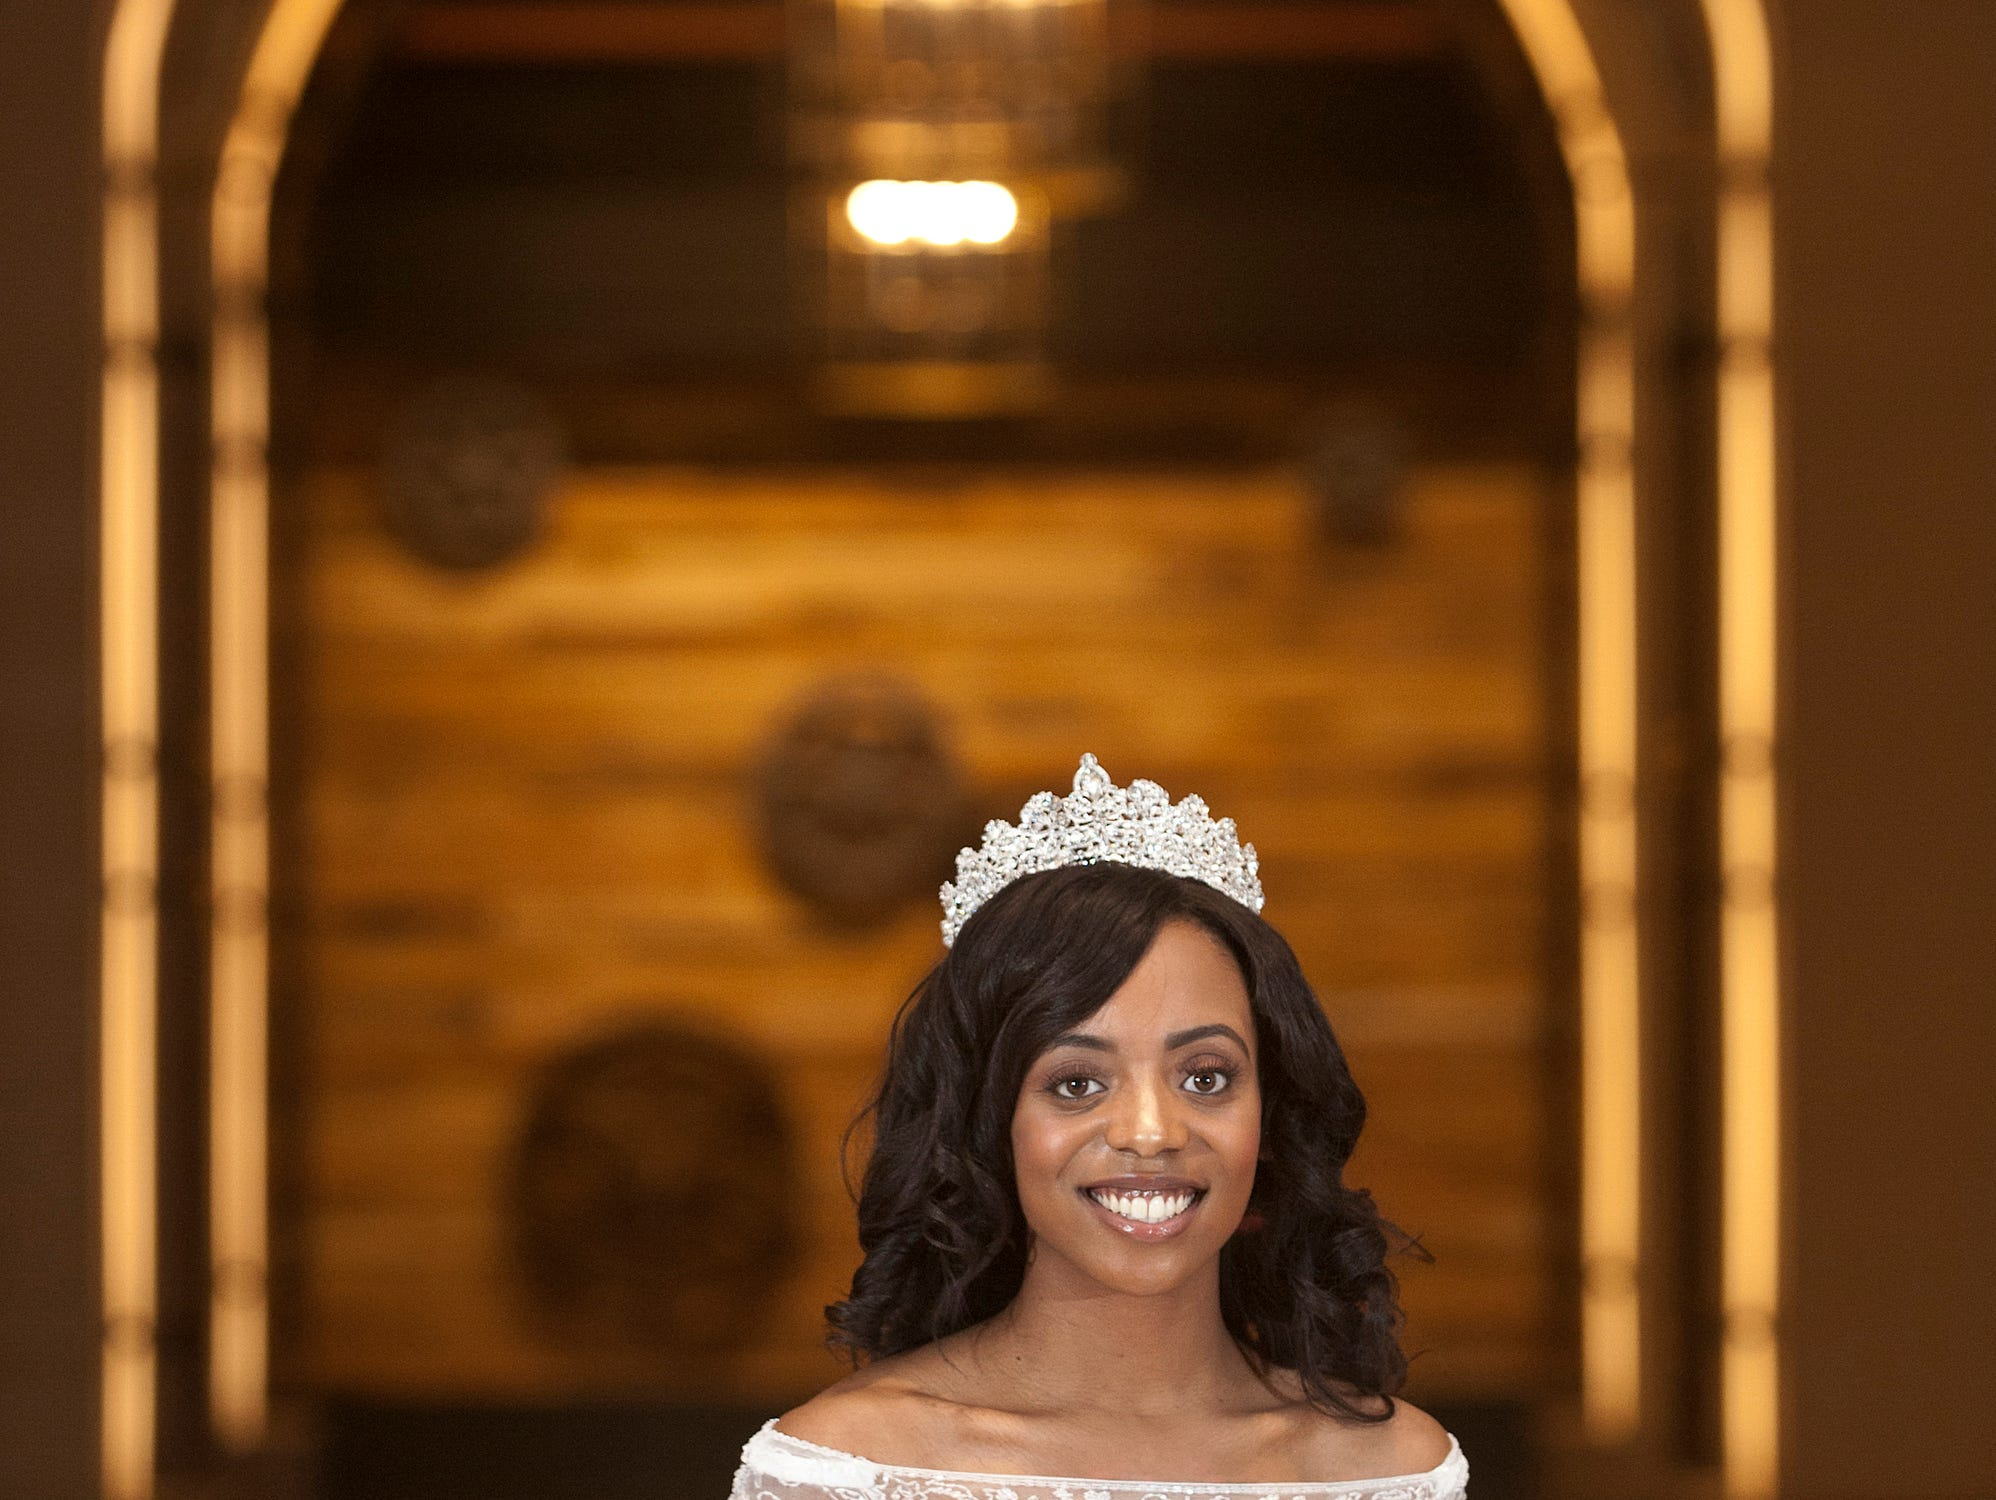 Kentucky Derby Festival Princess Brittany Patillo, 22, from the west end of Louisville, is a University of Louisville senior majoring in theater arts. She was posing in the arched hallway off the Omni Louisville Hotel lobby. 06 January 2019